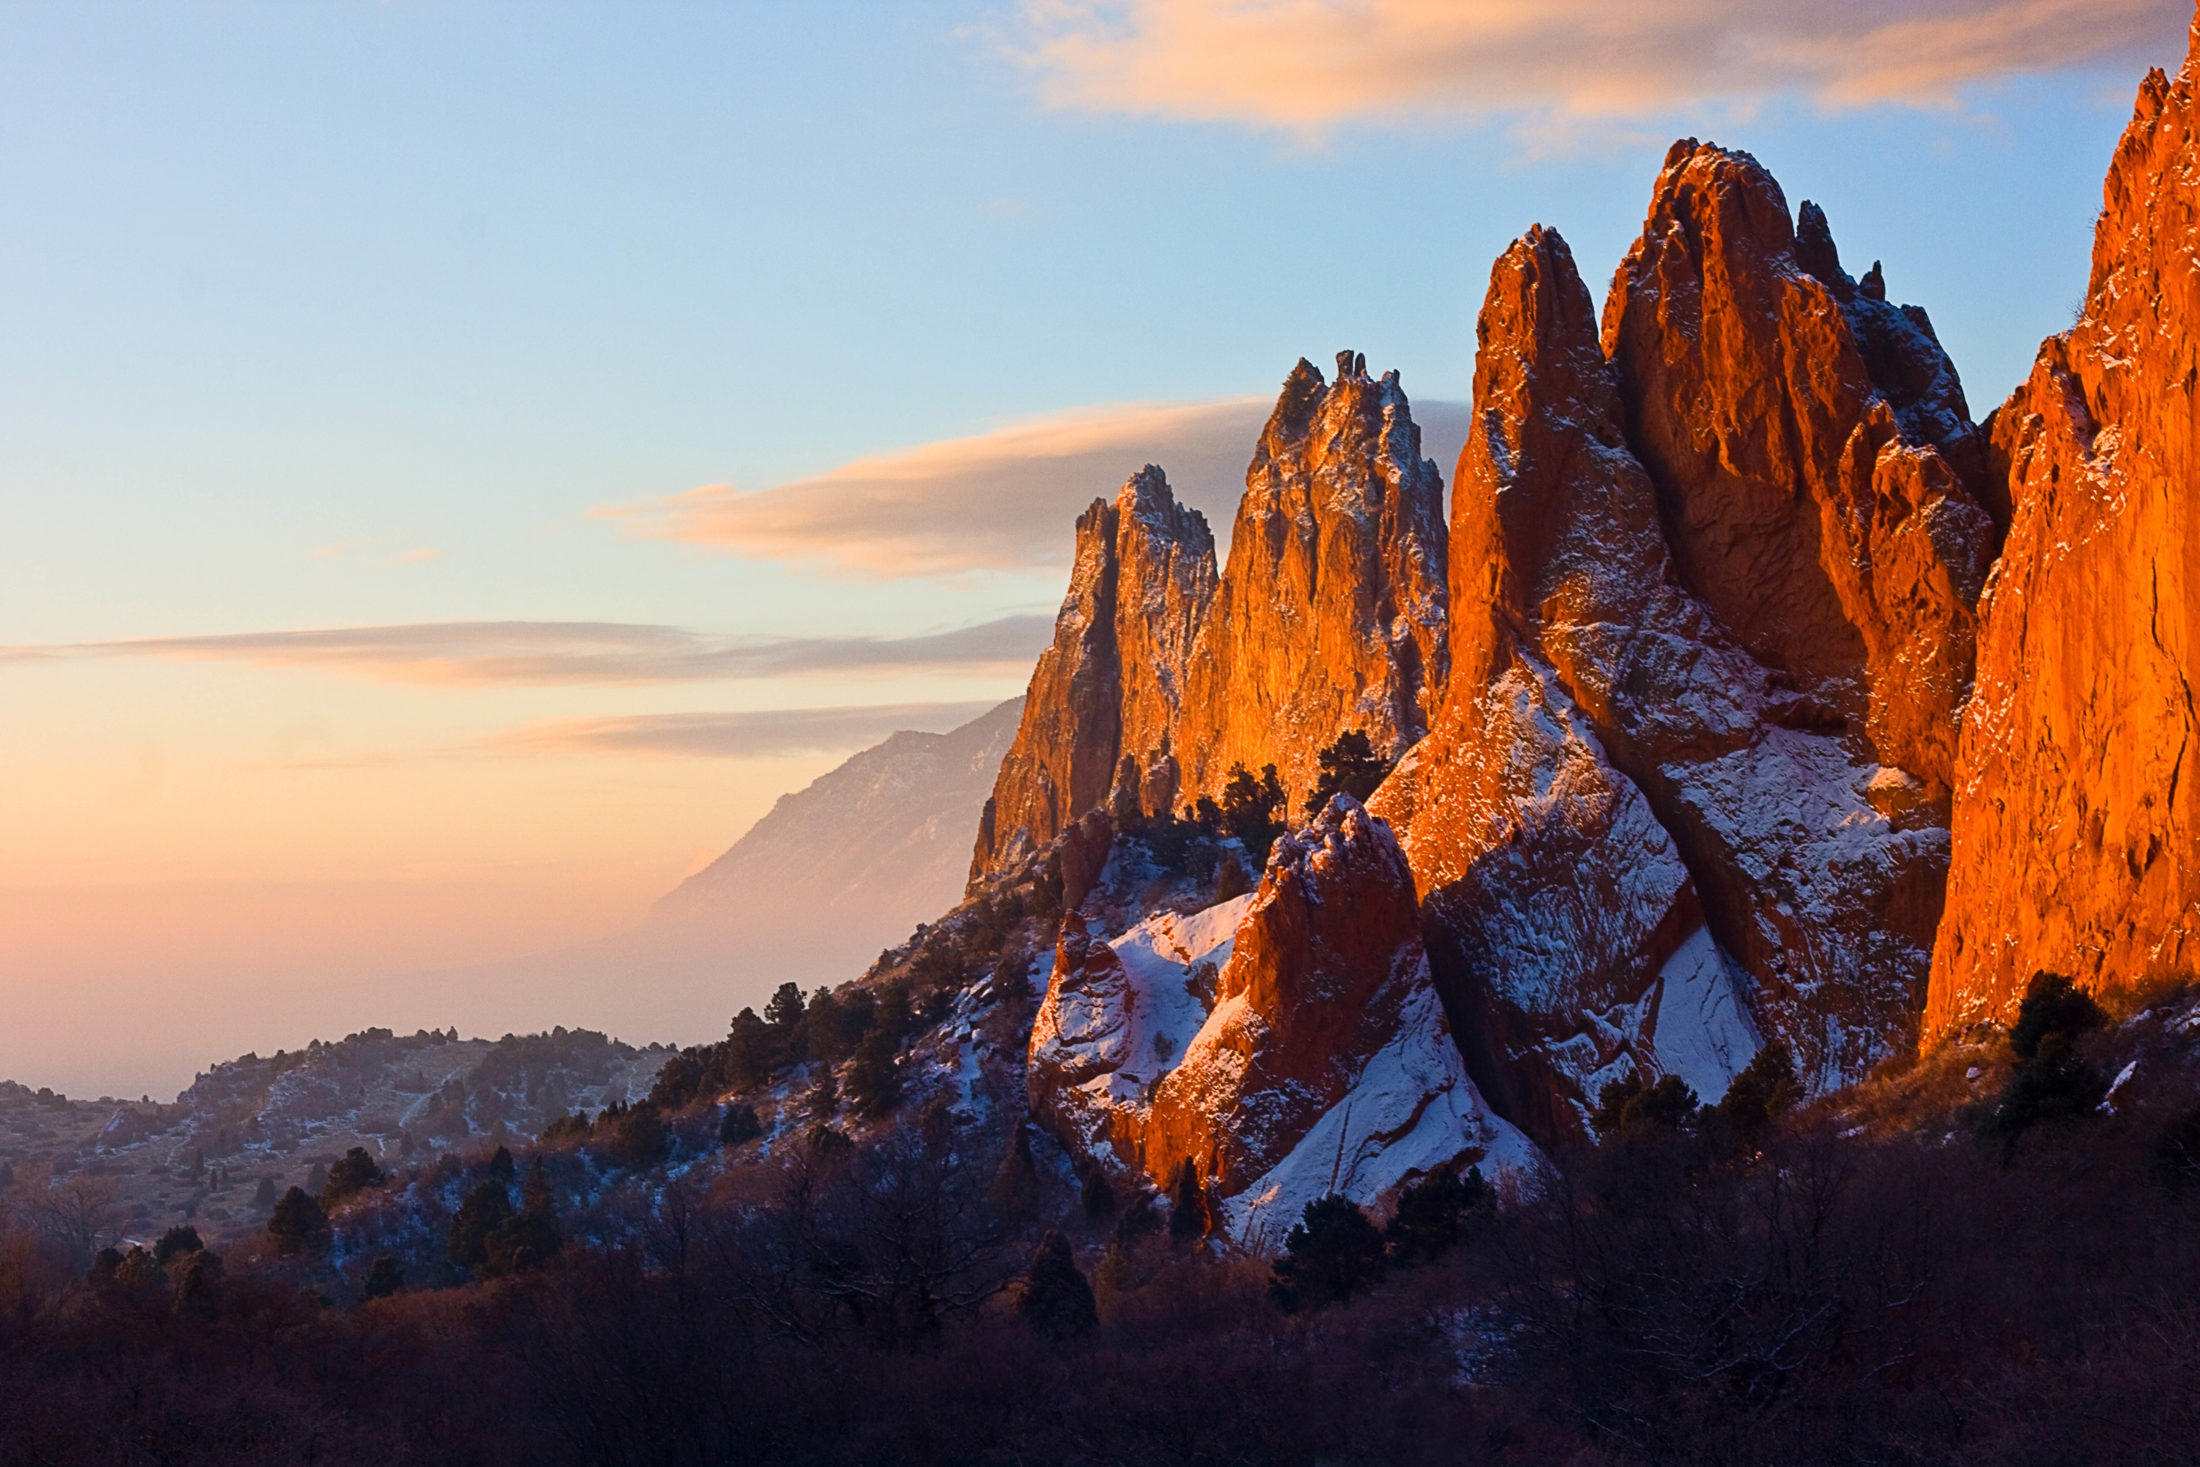 Garden of the Gods after a dusting of snow at sunrise